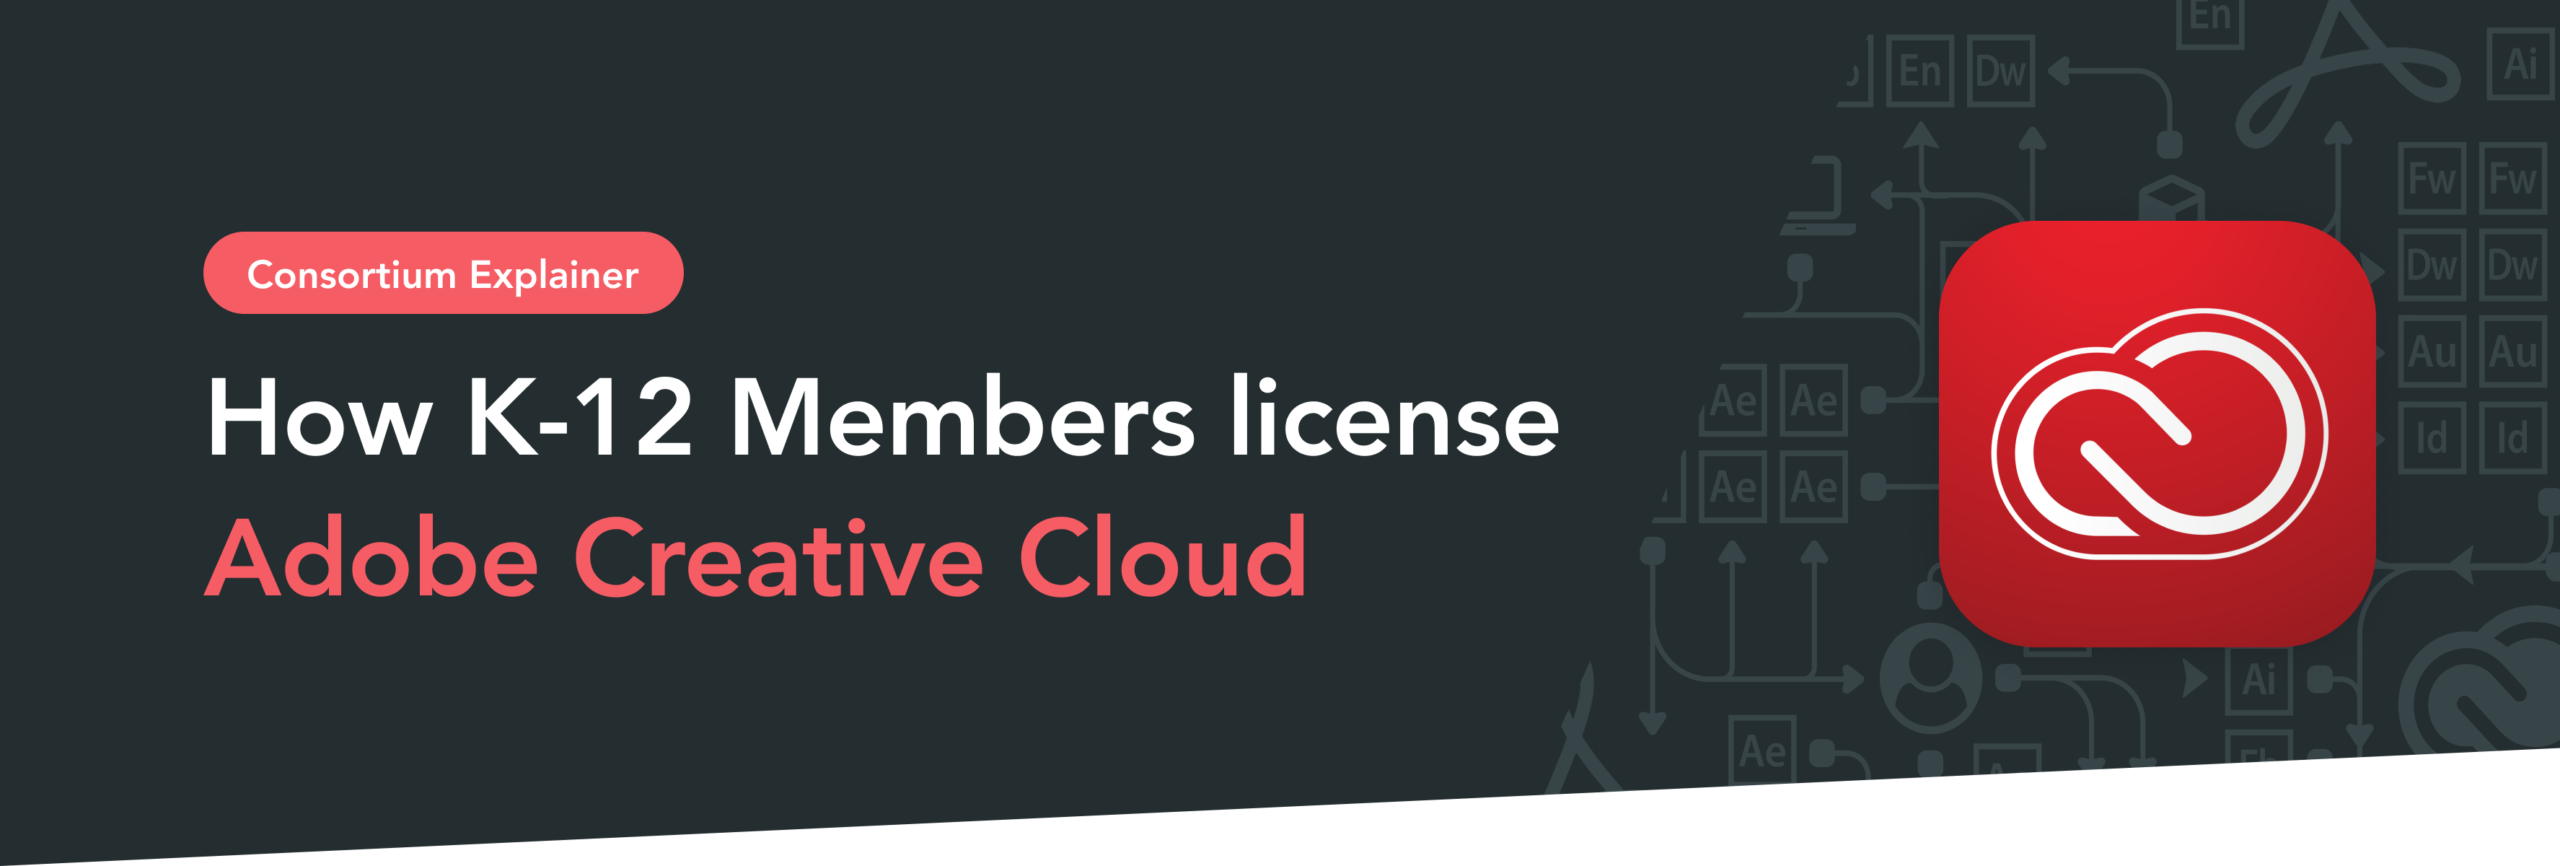 Adobe VIP Licensing for K12